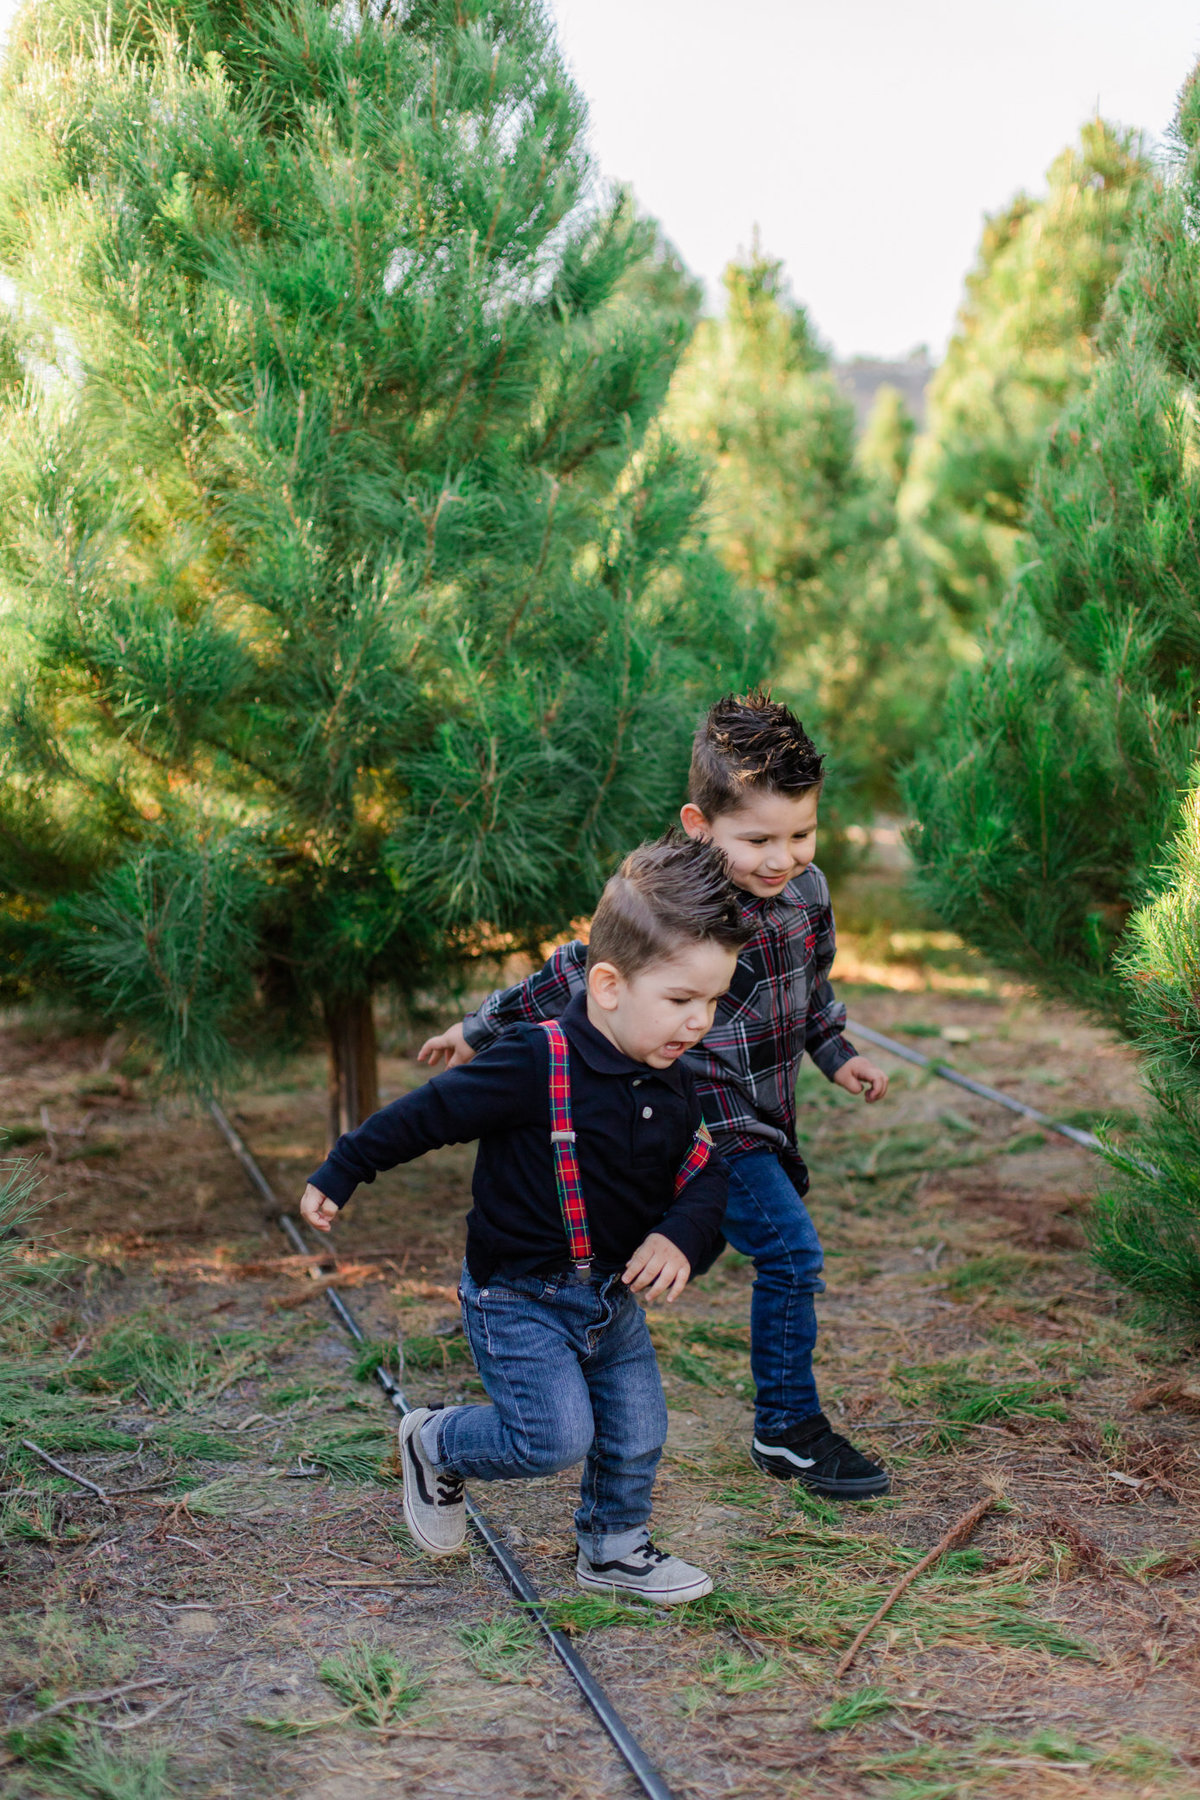 Xmas Photography, Rye Farm Christmas Tree, Family Photography S&V-20